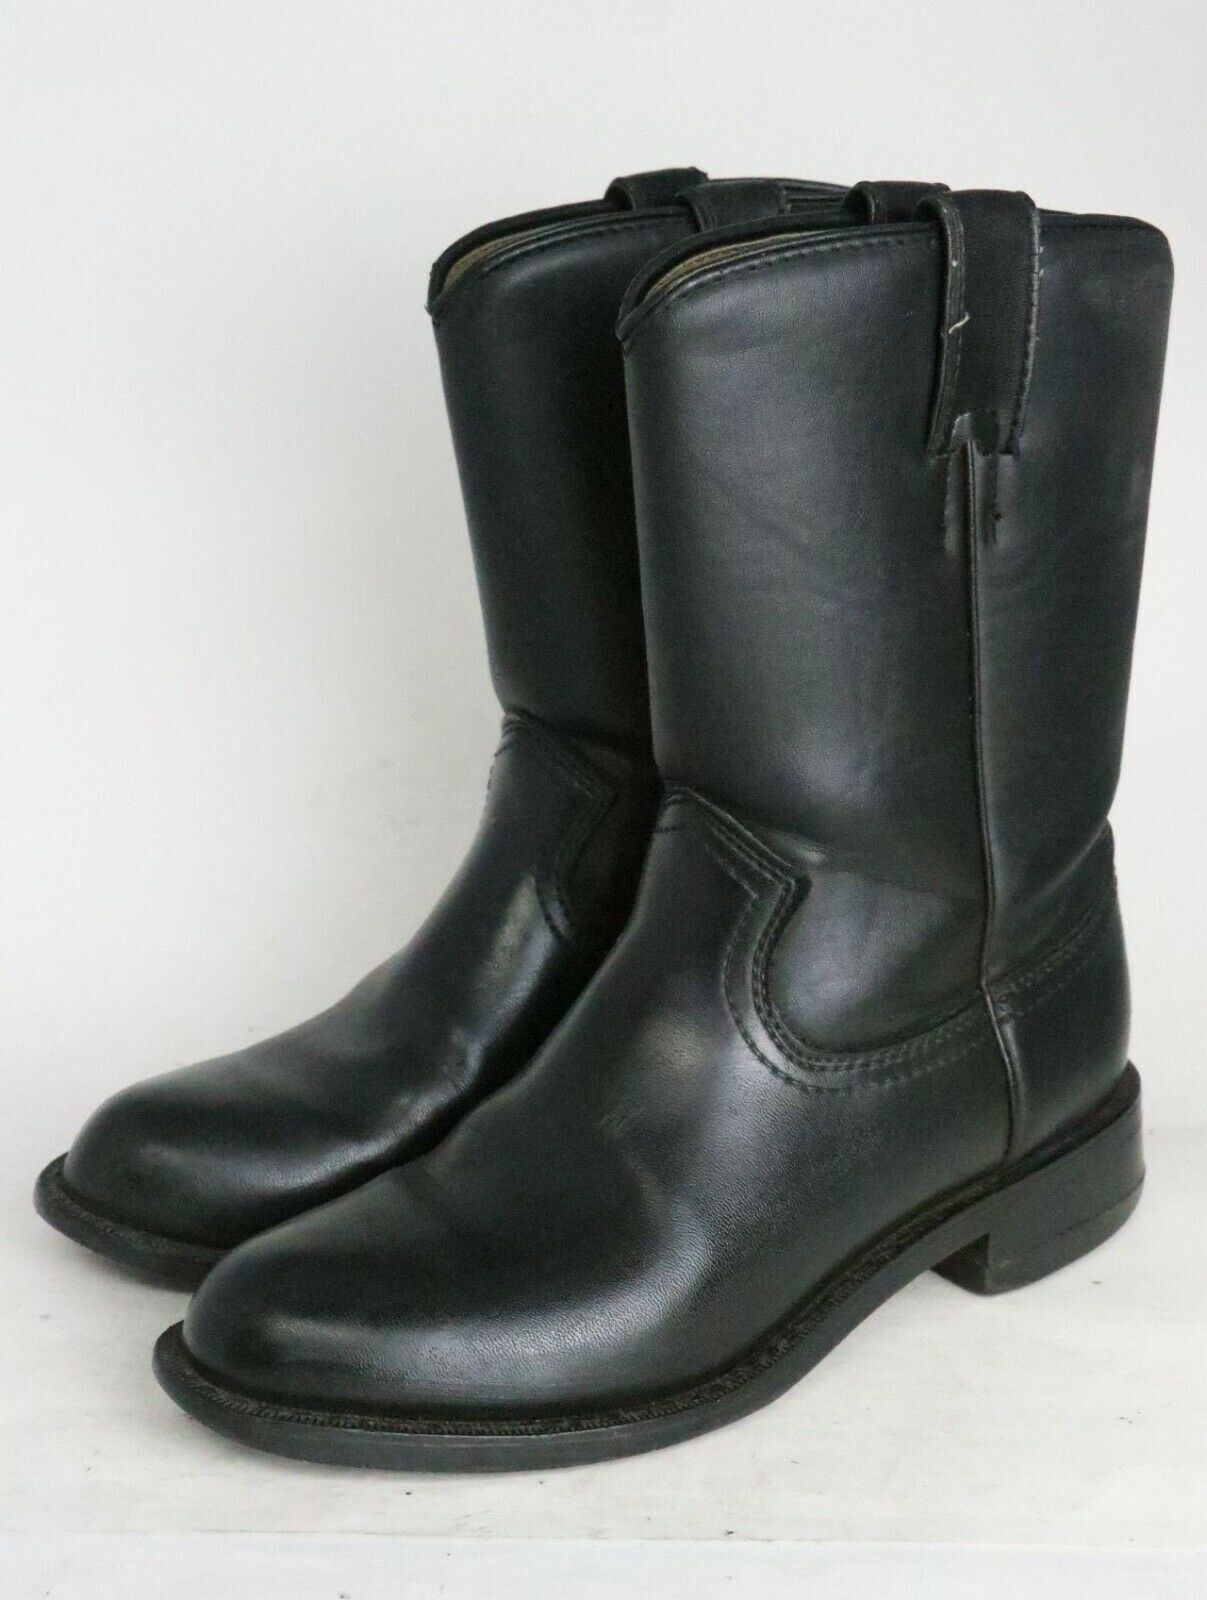 Express Rider Jose 2527298 Black Leather Men's Boots Size 7.5